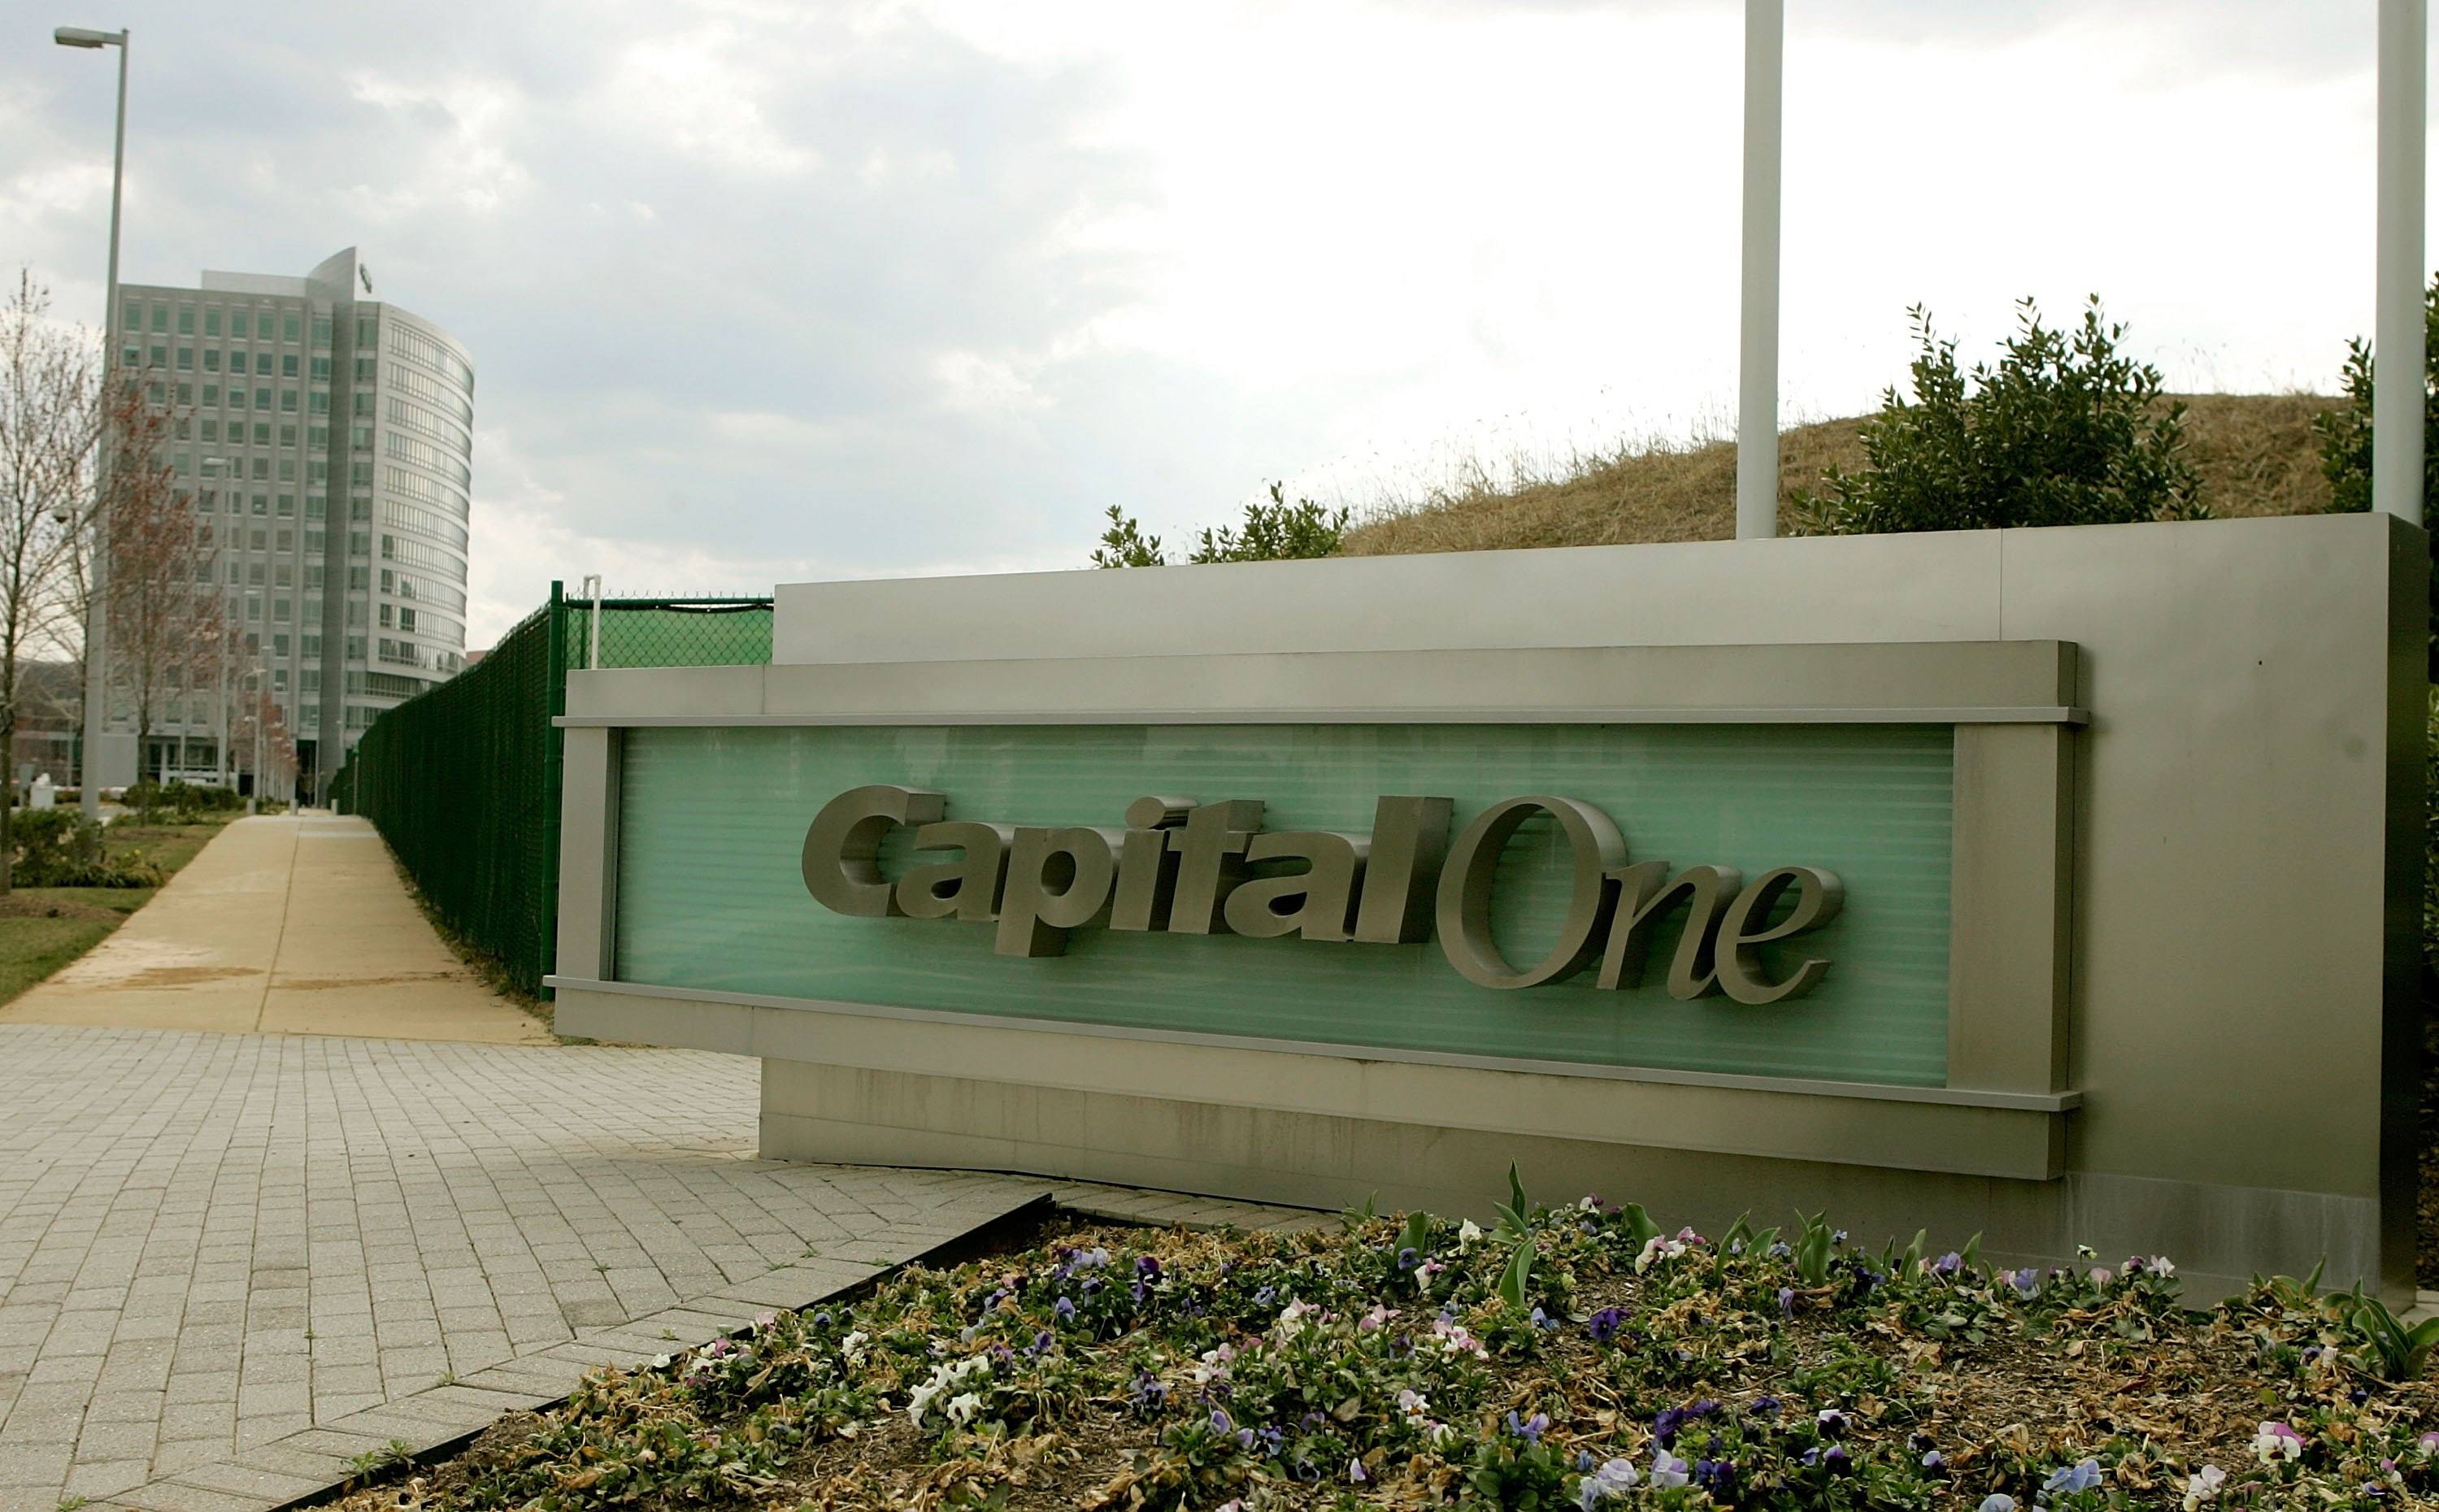 The Capital One headquarters